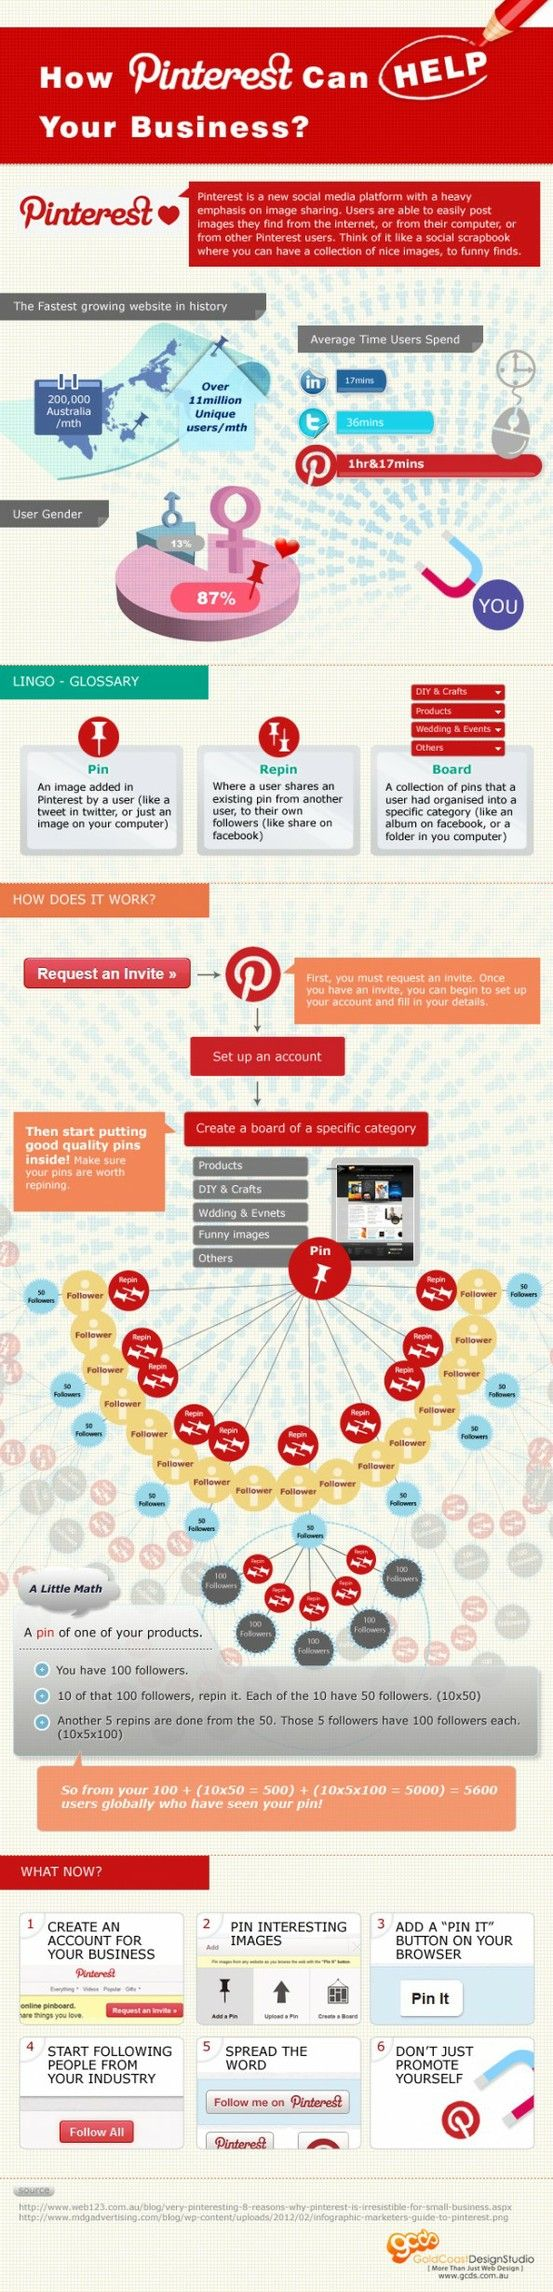 How #Pinterest Can Help Your Business? - #SMM - #Infografia